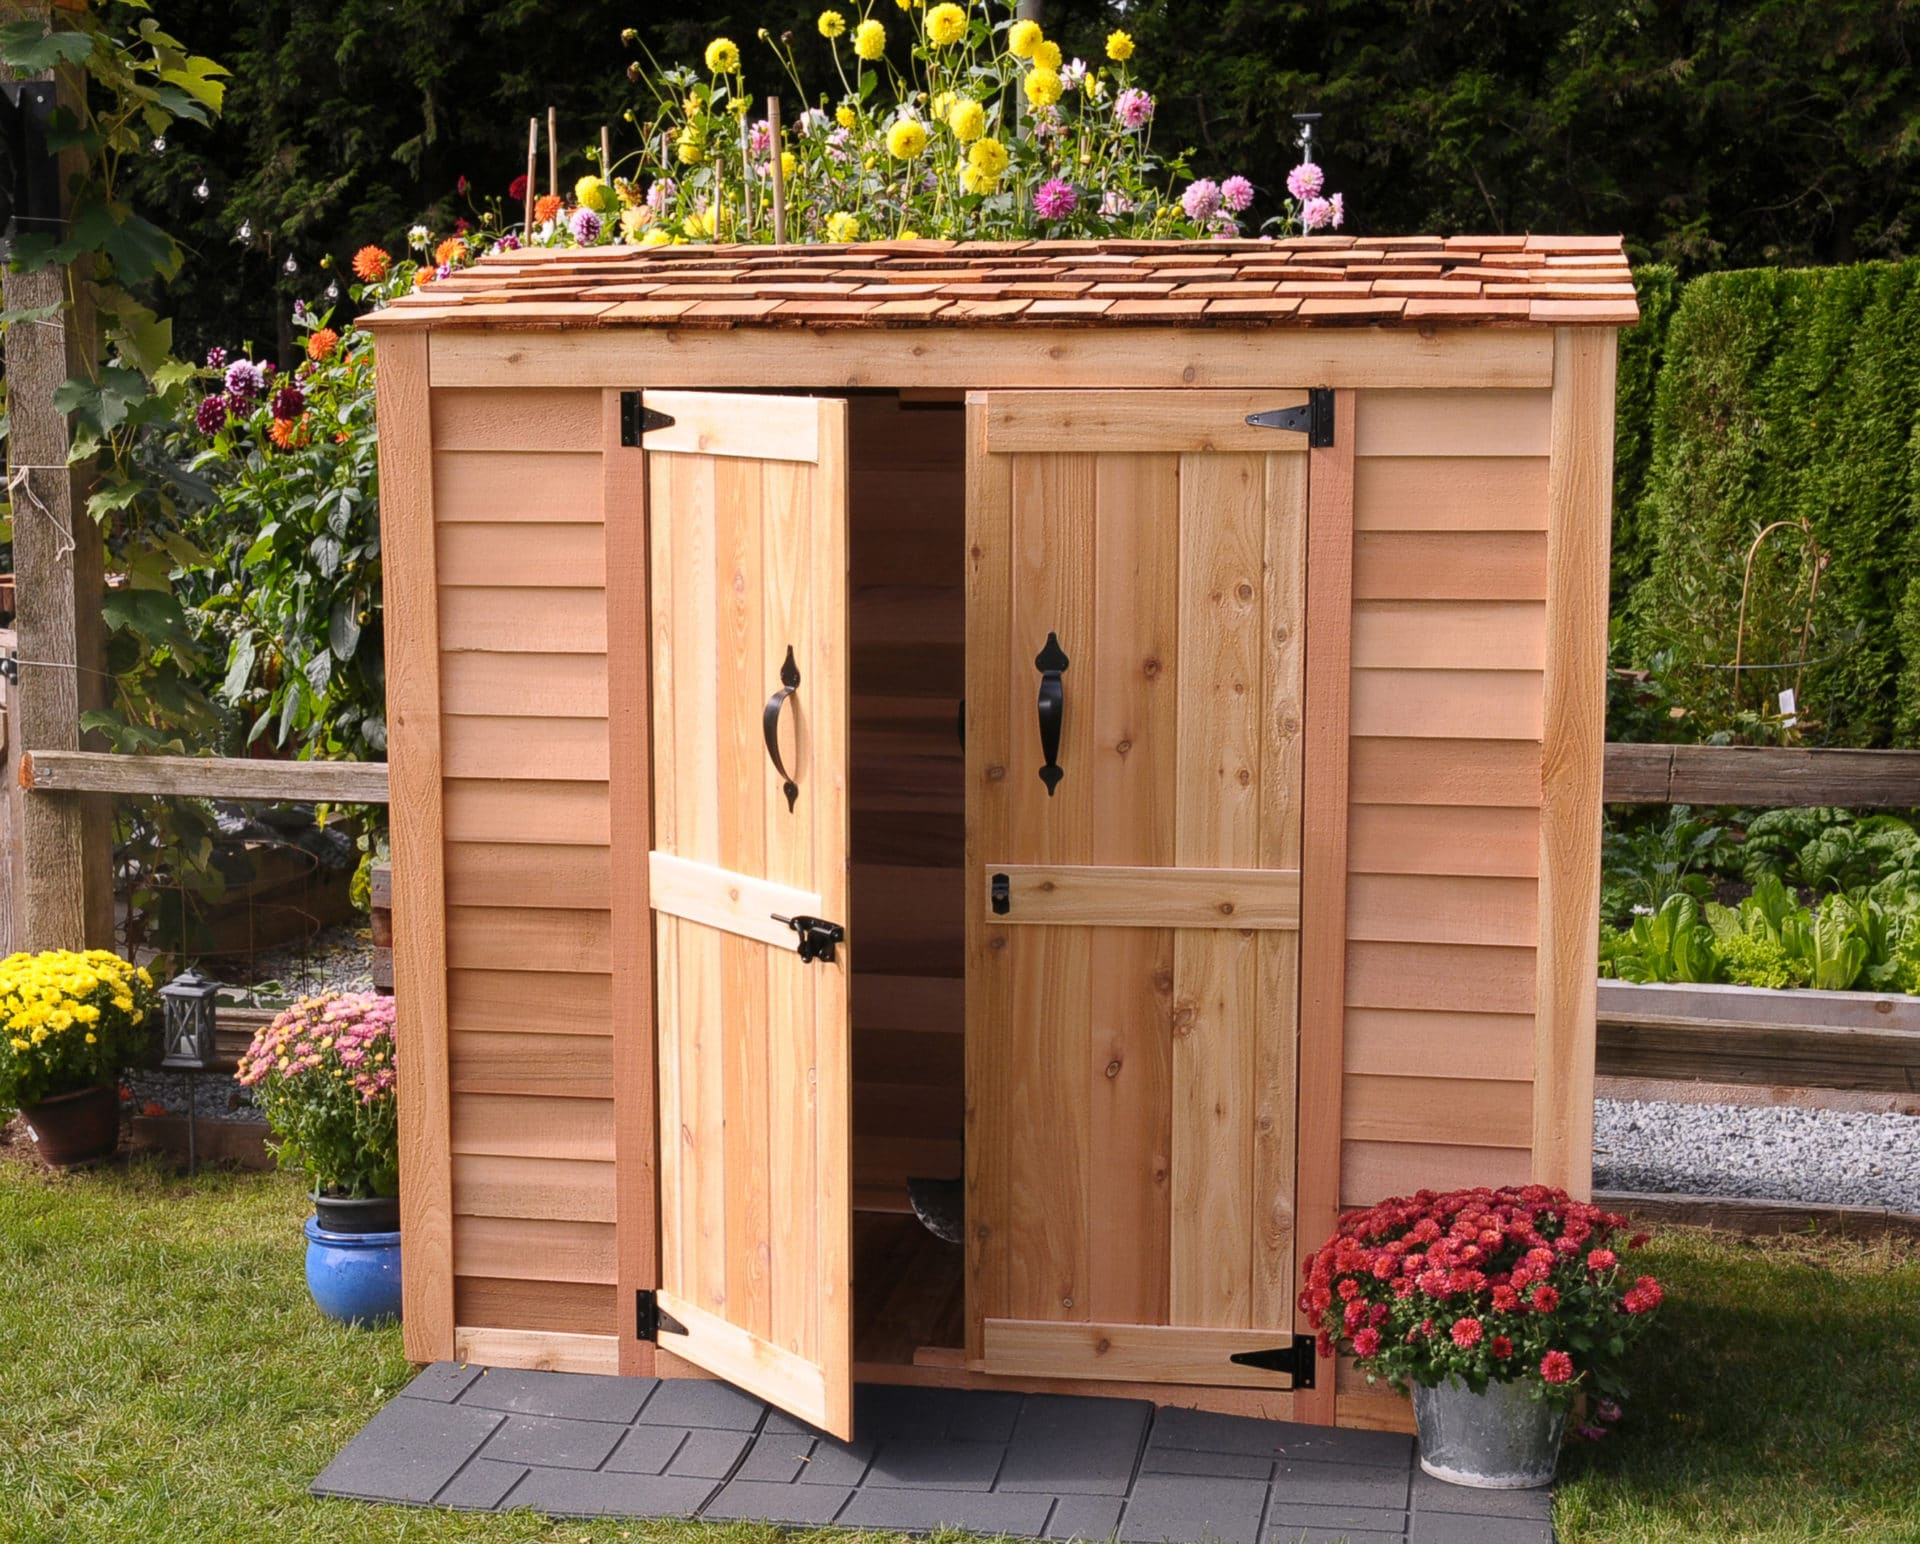 How to place an outdoor storage shed in your garden ?